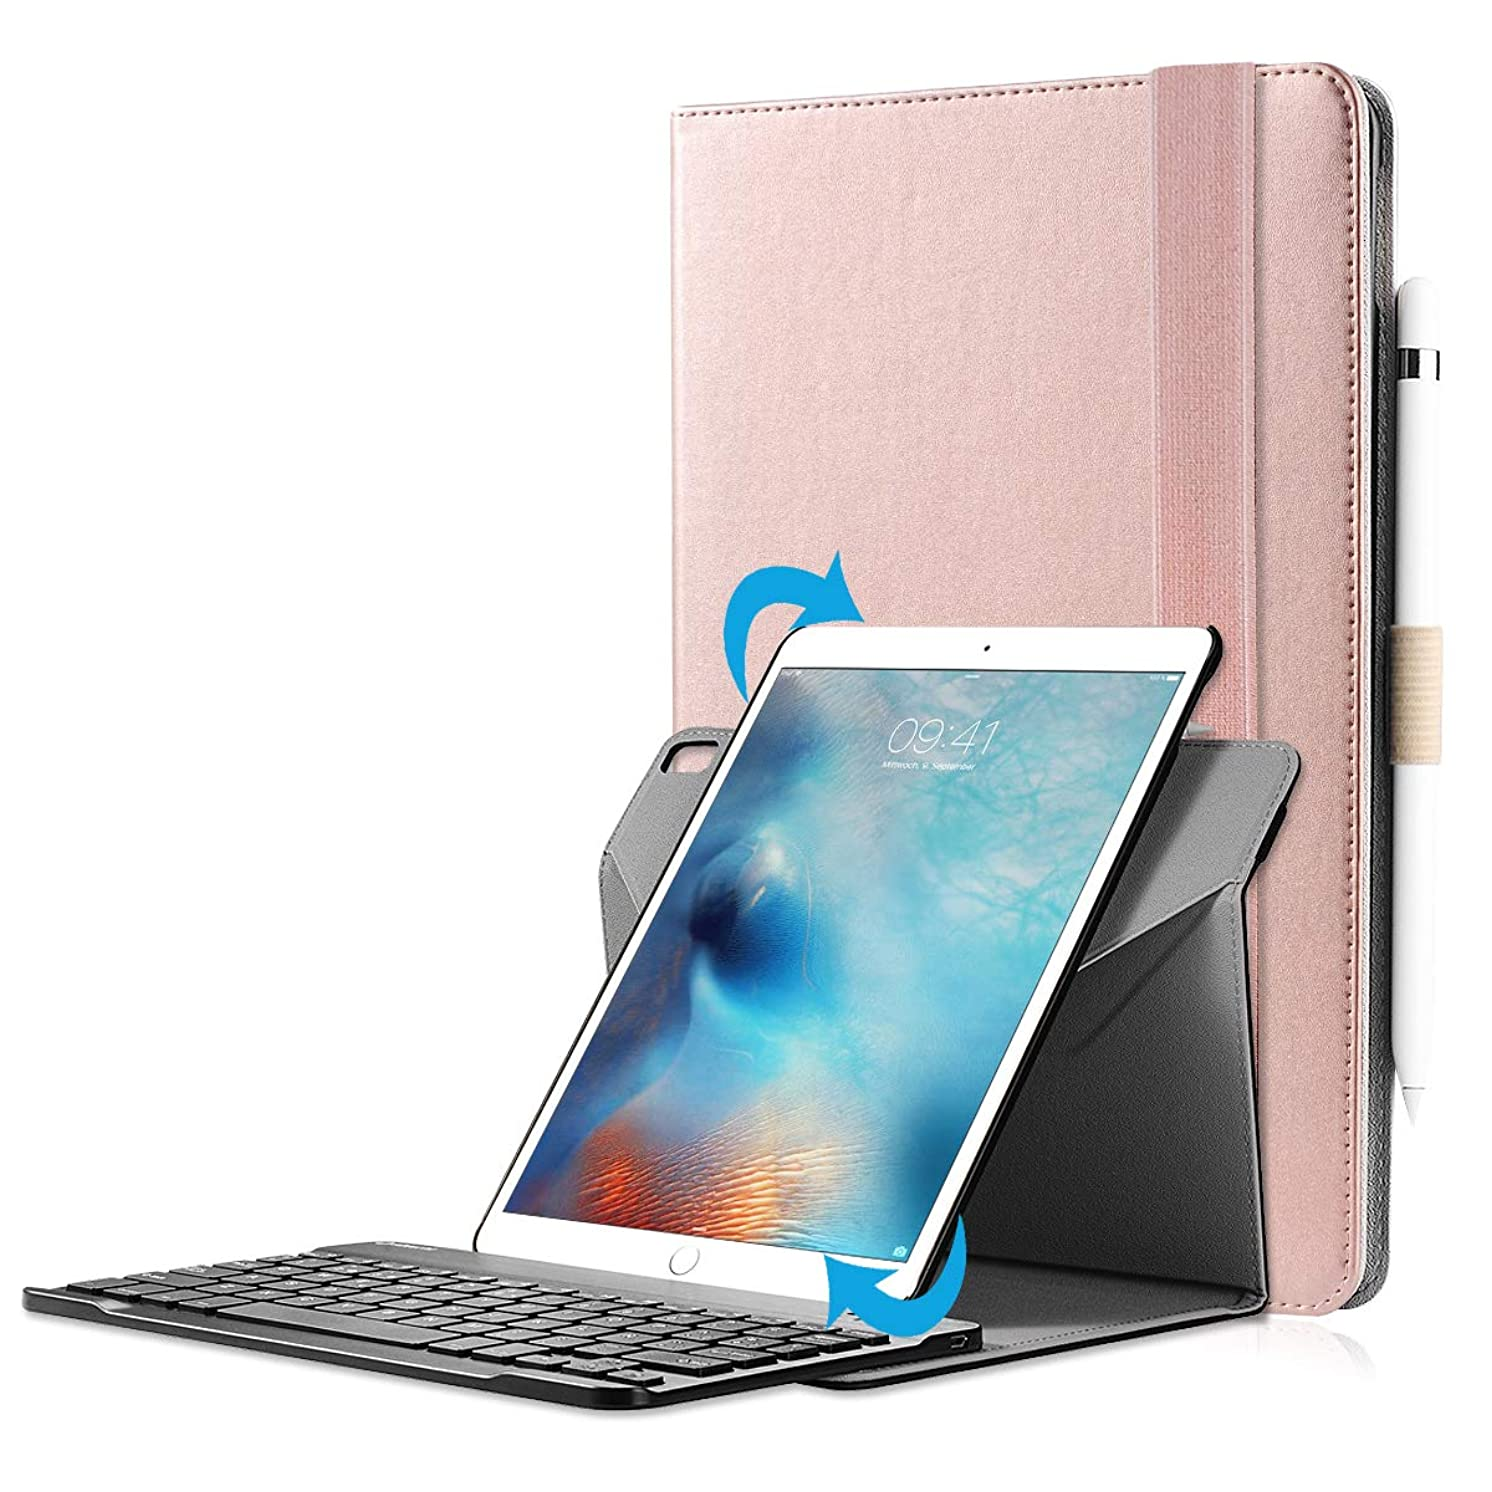 valkit Compatible with iPad 9.7 2017 Bluetooth Keyboard, iPad Air Keyboard Case, Detachable Wireless Bluetooth Keyboard for New iPad 9.7 2018 with 360 Degree Rotation and Multi-Angle Stand, Rose Gold